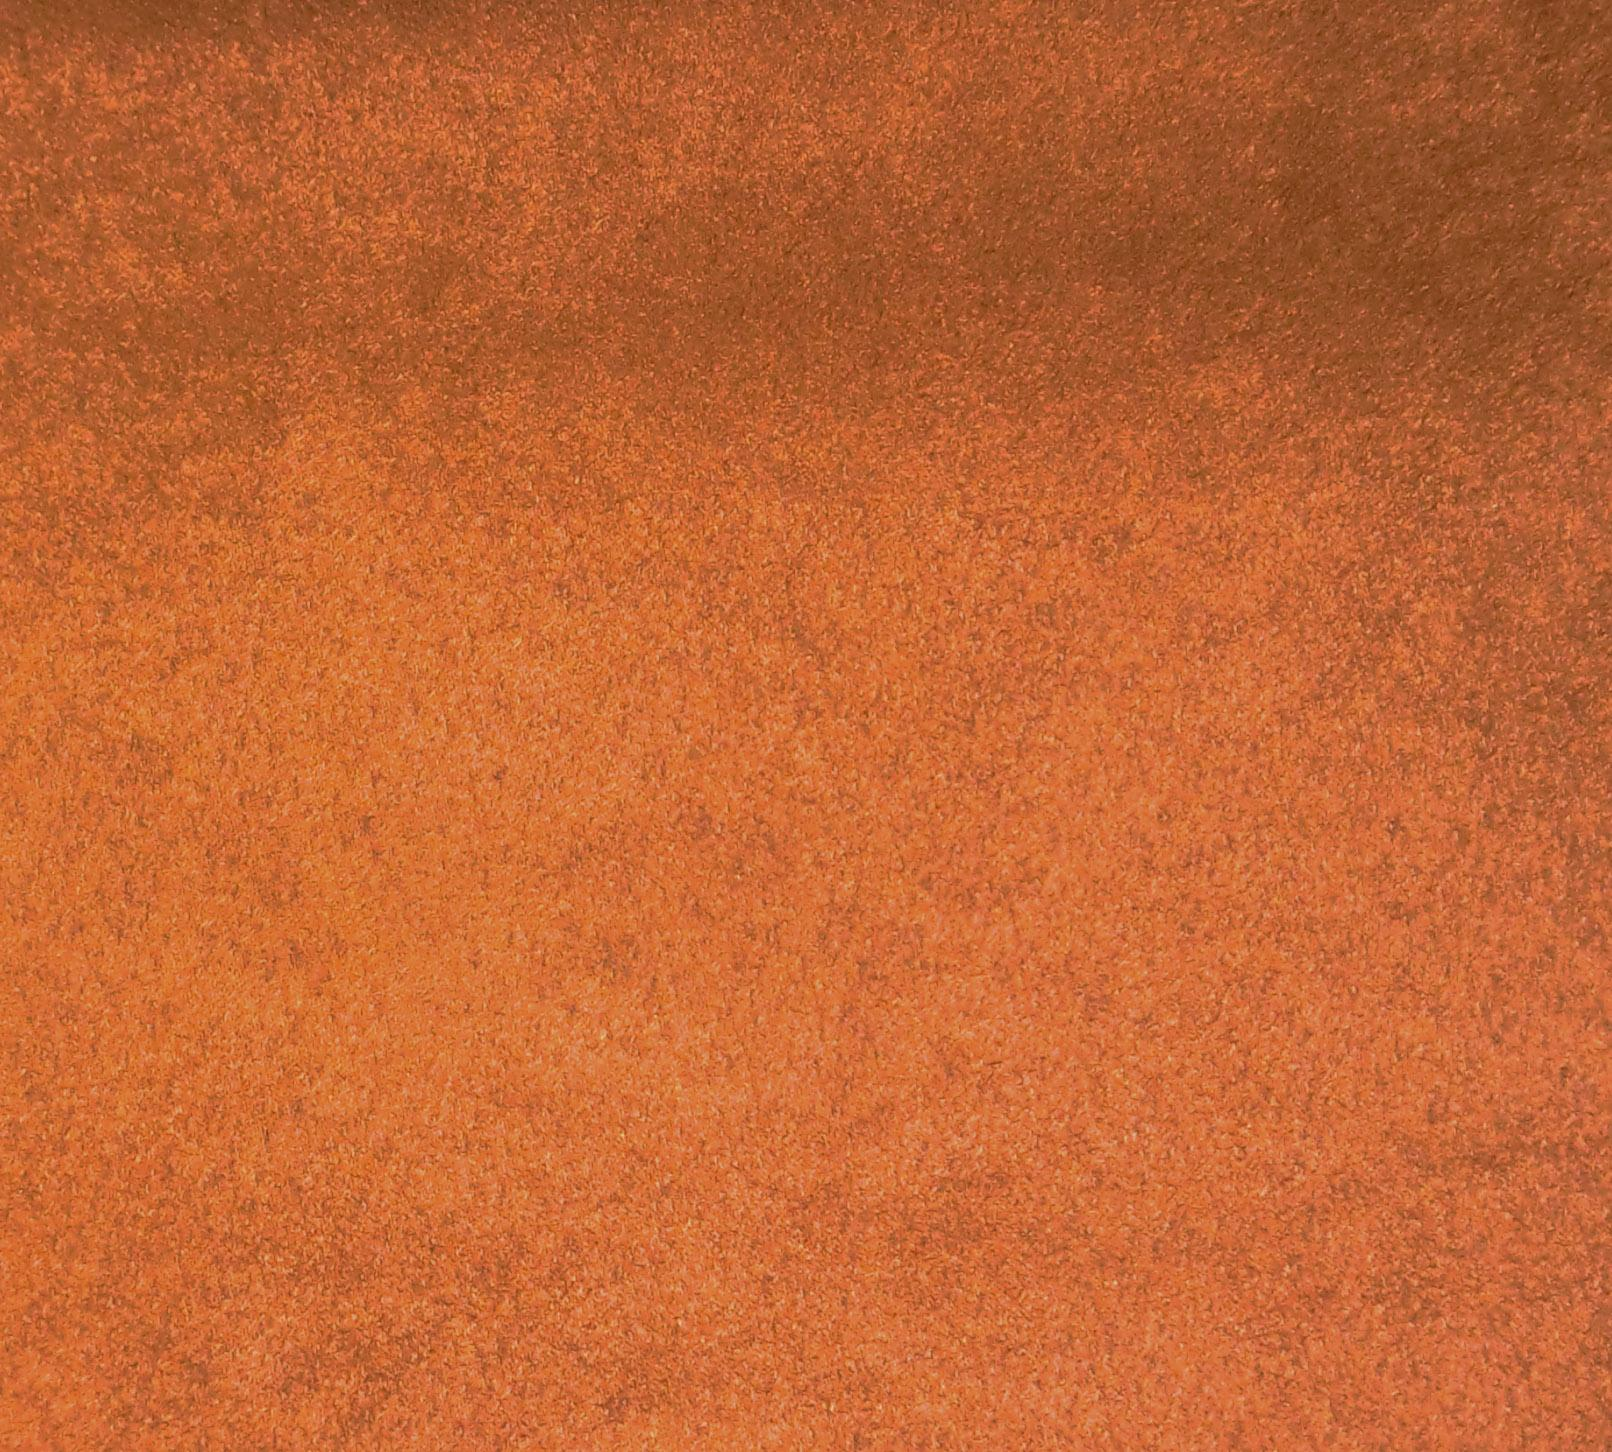 Infinity Fabrics Passion Suede Copper Fabric